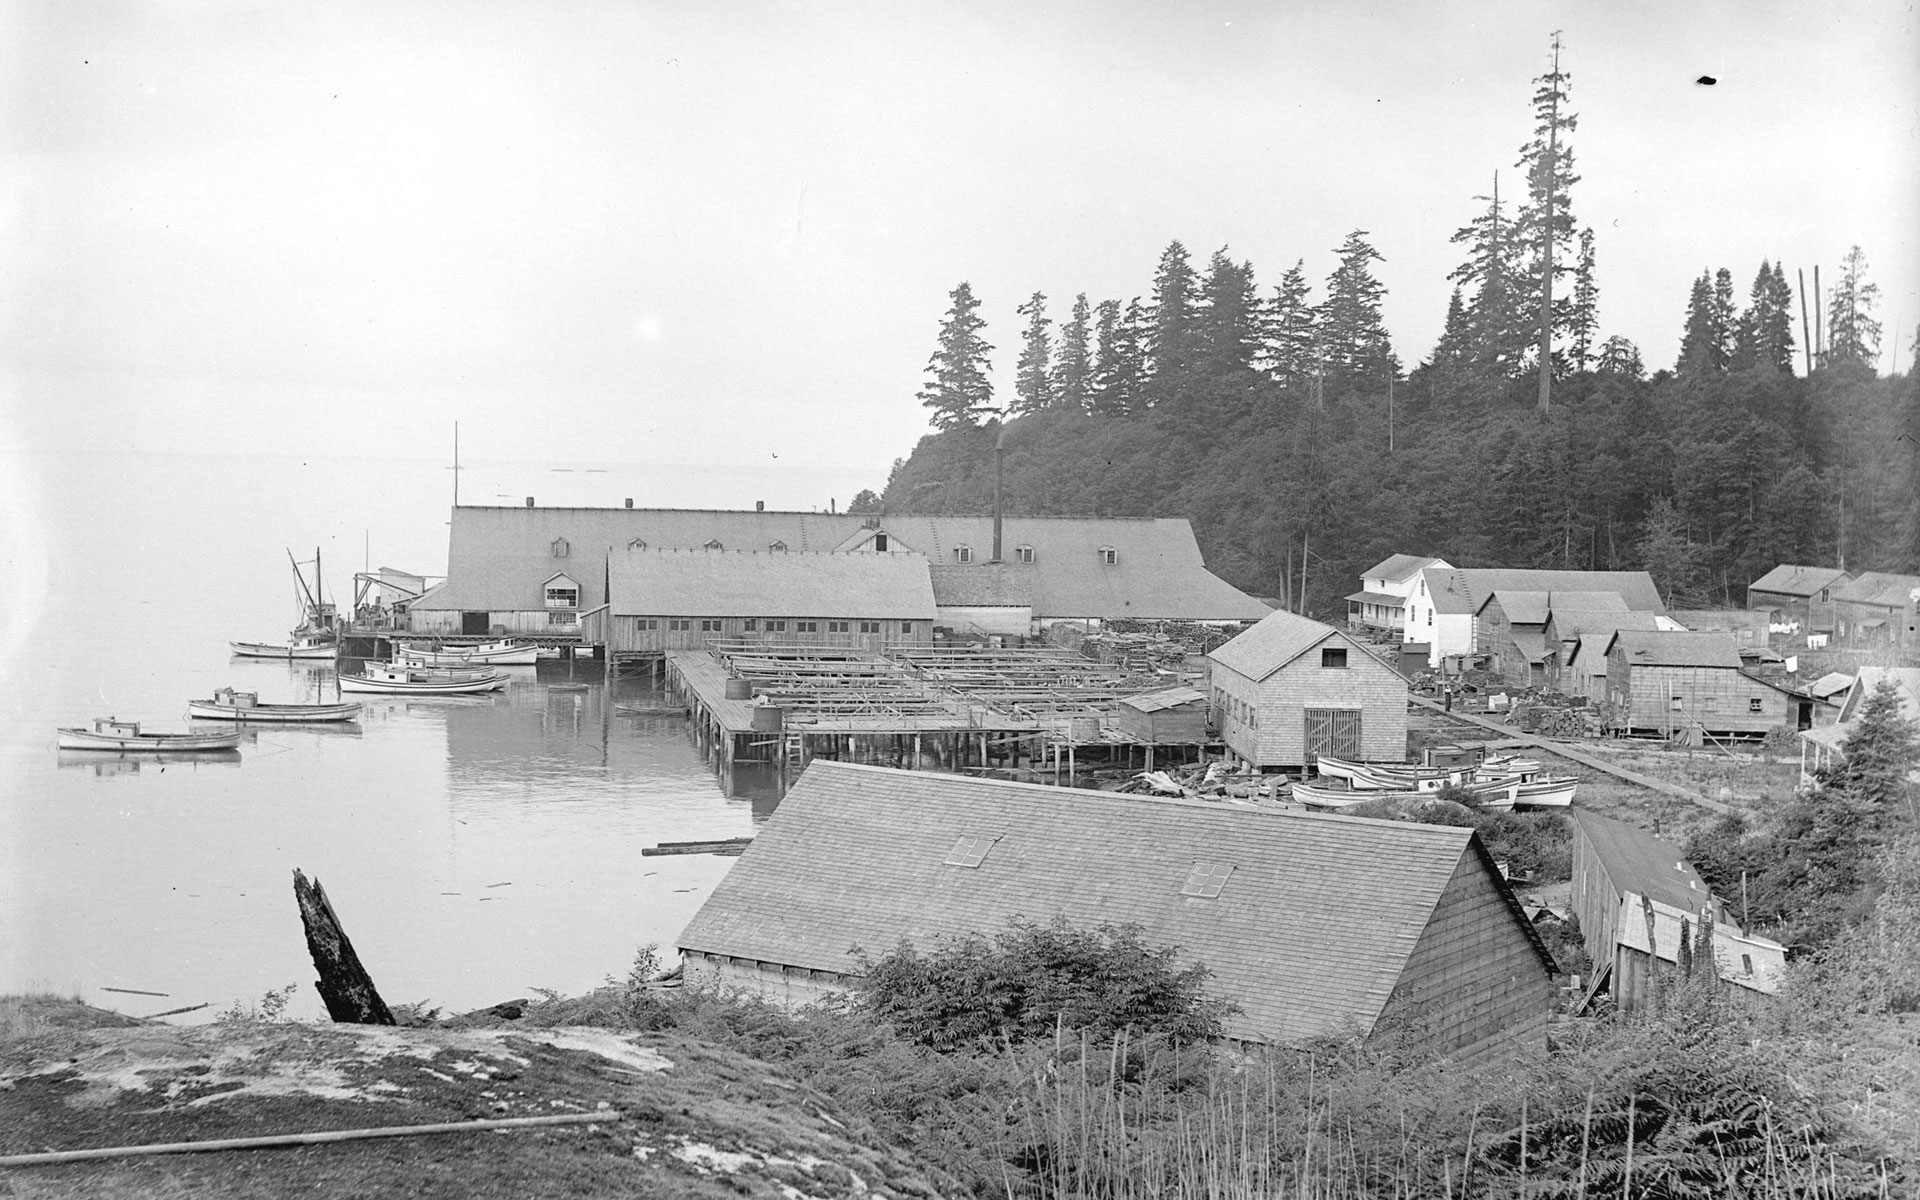 Cannery buildings, wharves and boats.